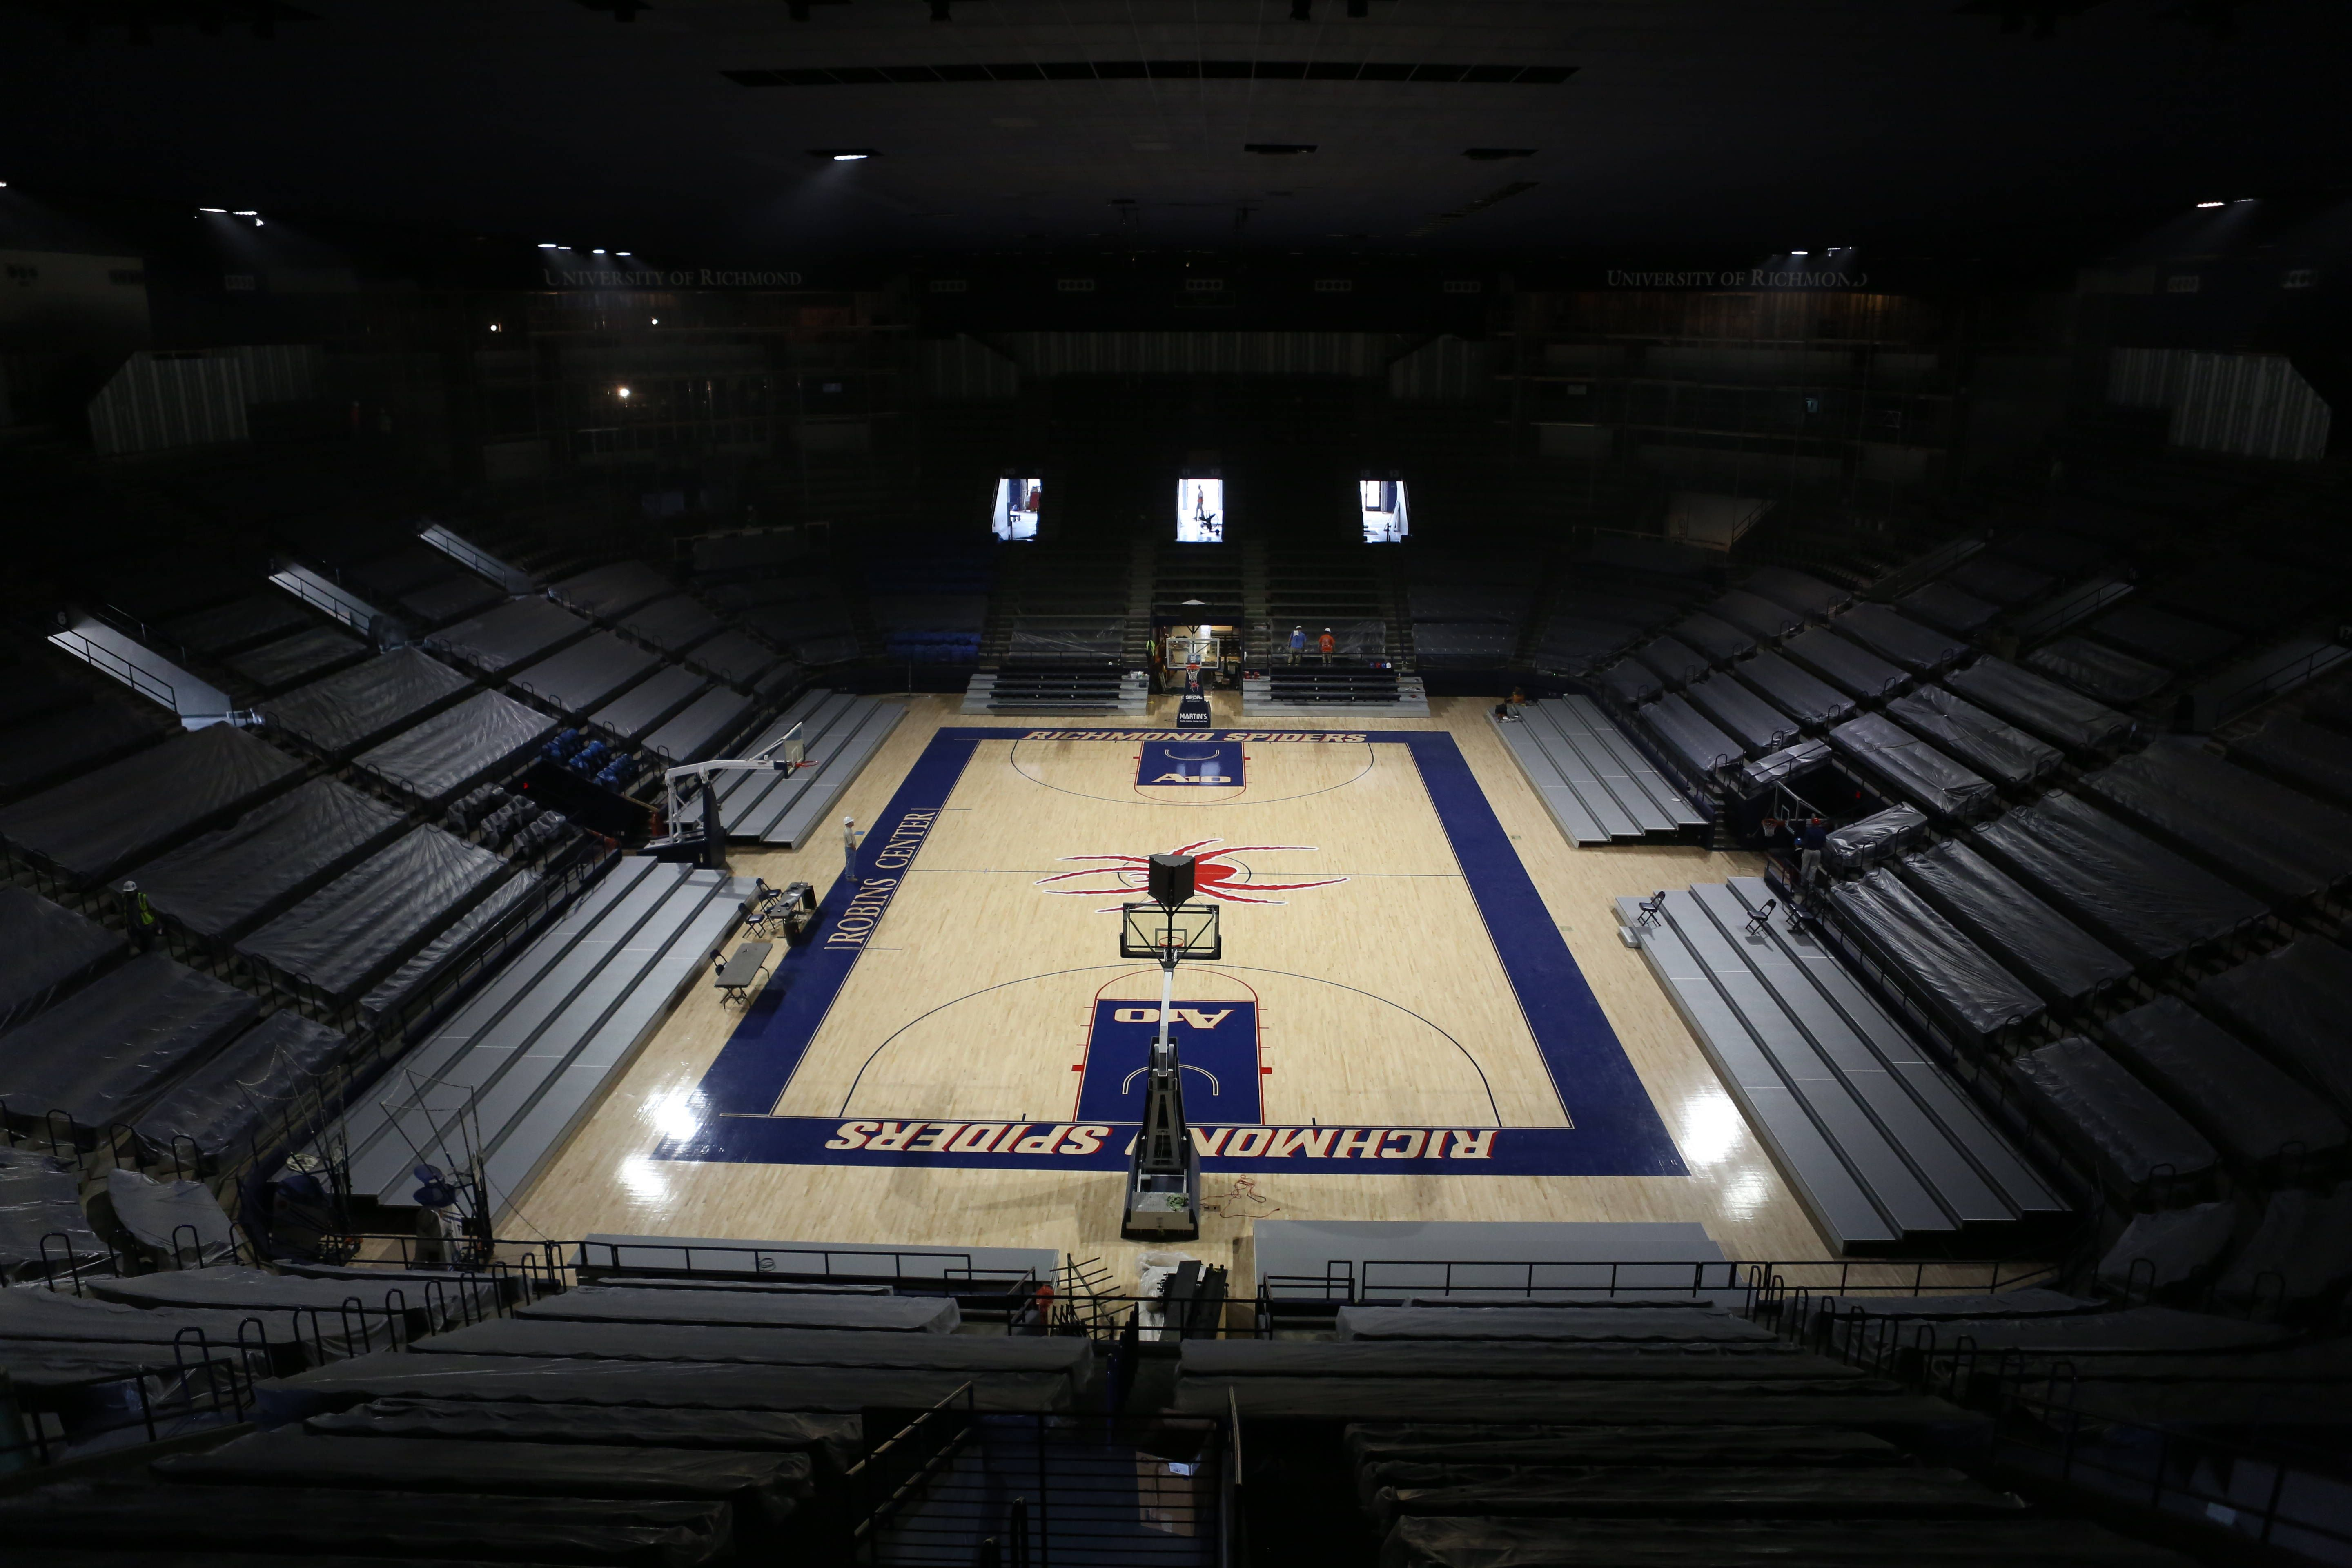 Robins Center Home Of The University Of Richmond Spiders Richmond Va University Of Richmond Richmond Spiders Basketball Court